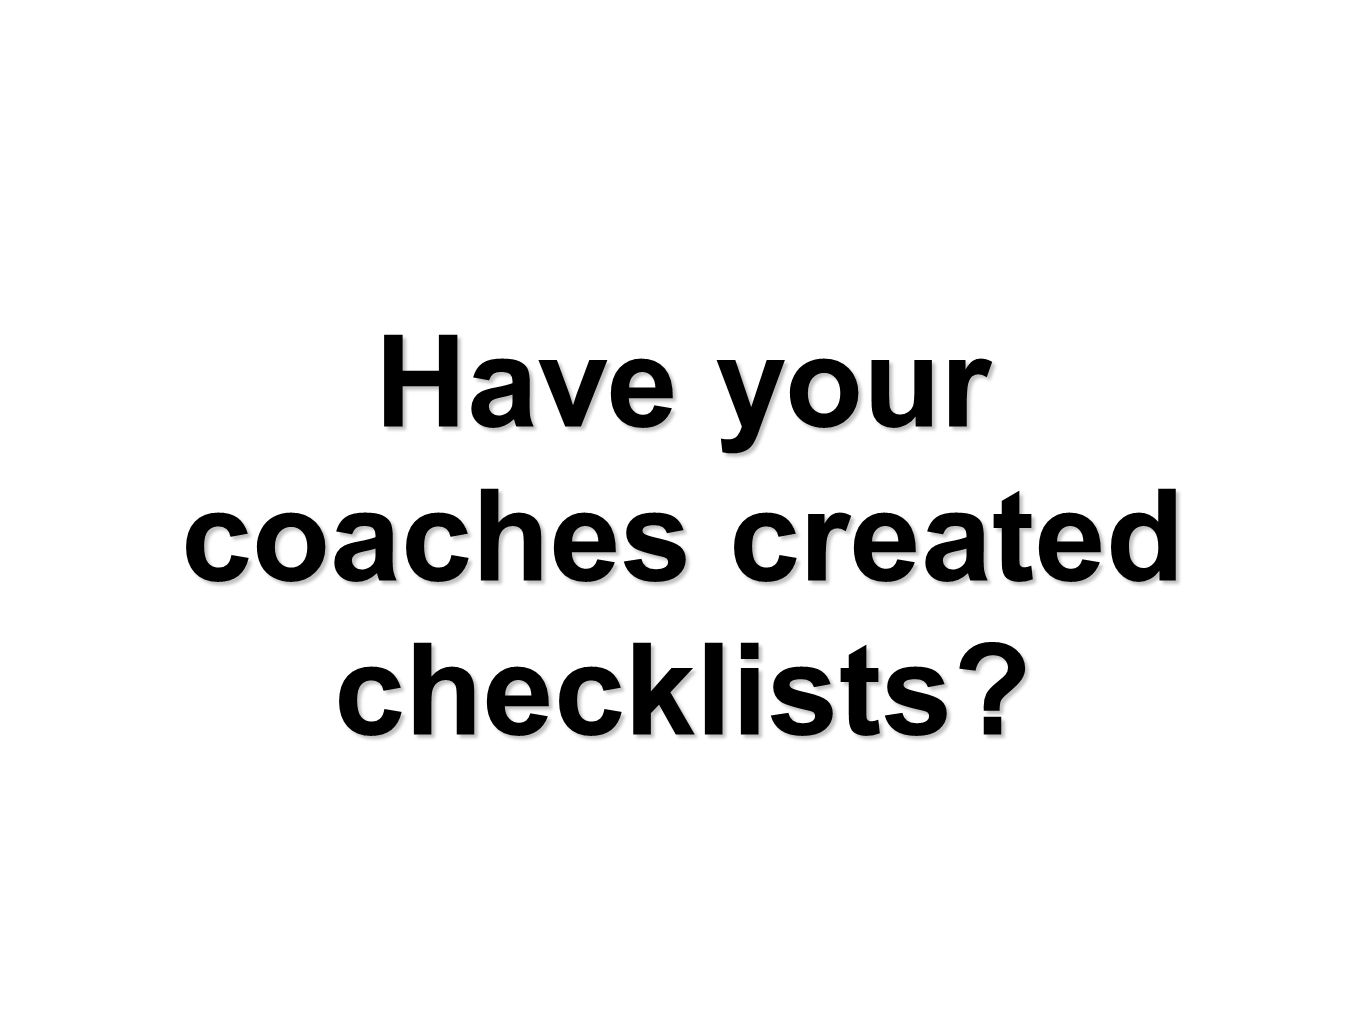 Have your coaches created checklists